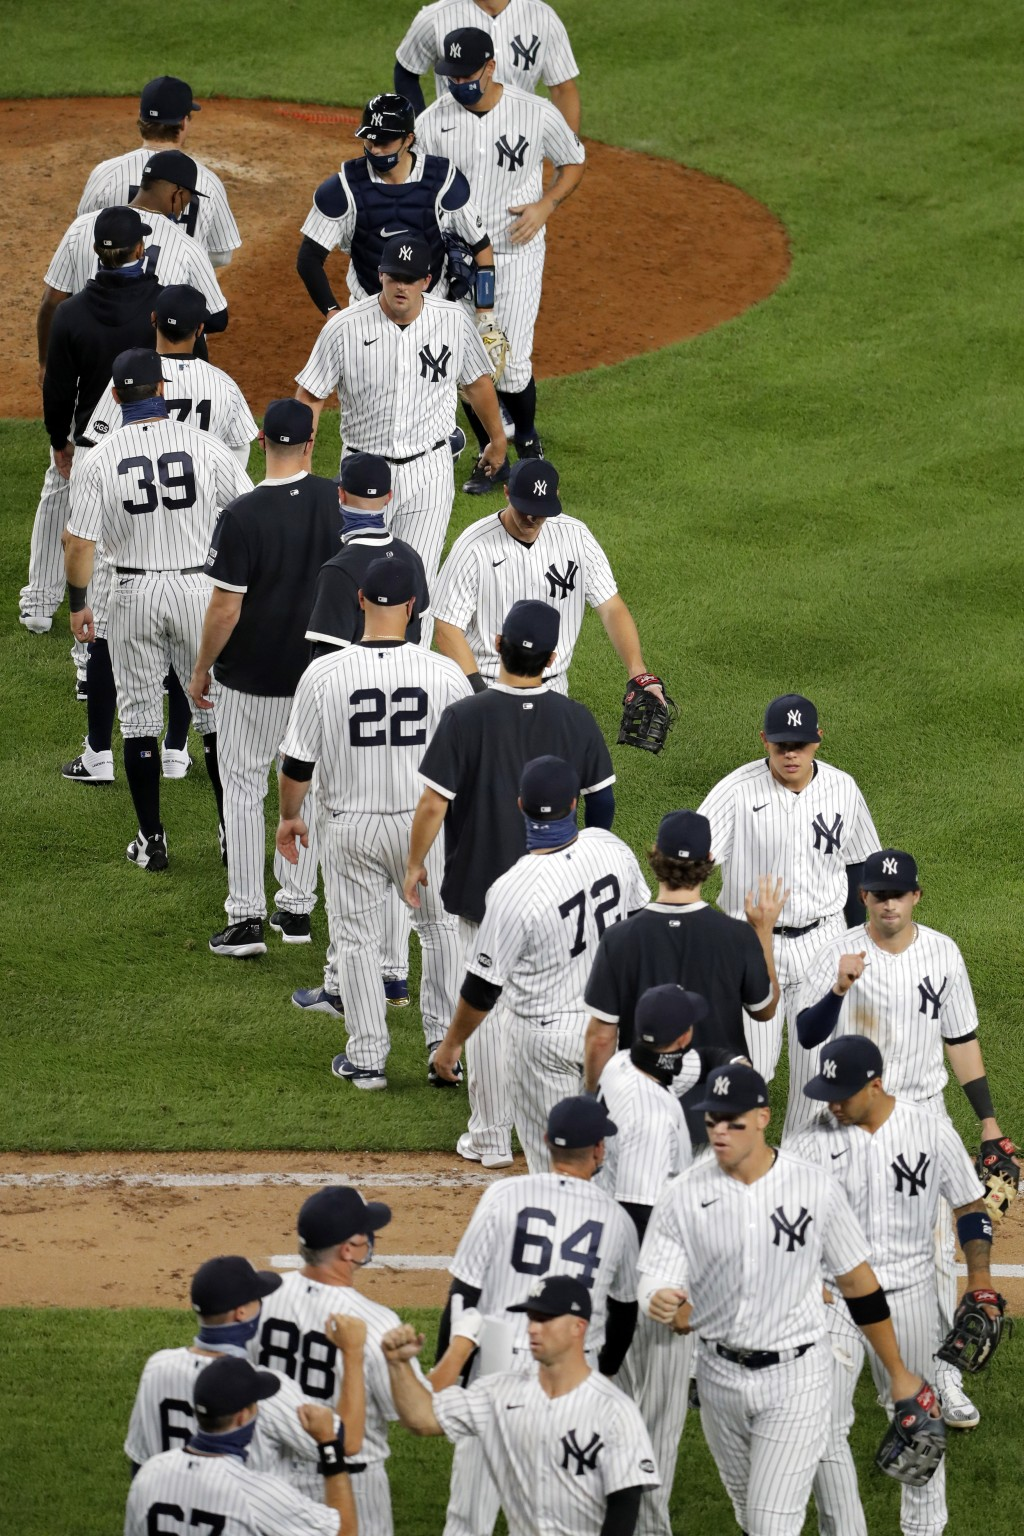 The New York Yankees celebrate after the baseball game against the Boston Red Sox at Yankee Stadium, Friday, July 31, 2020, in New York. The Yankees d...